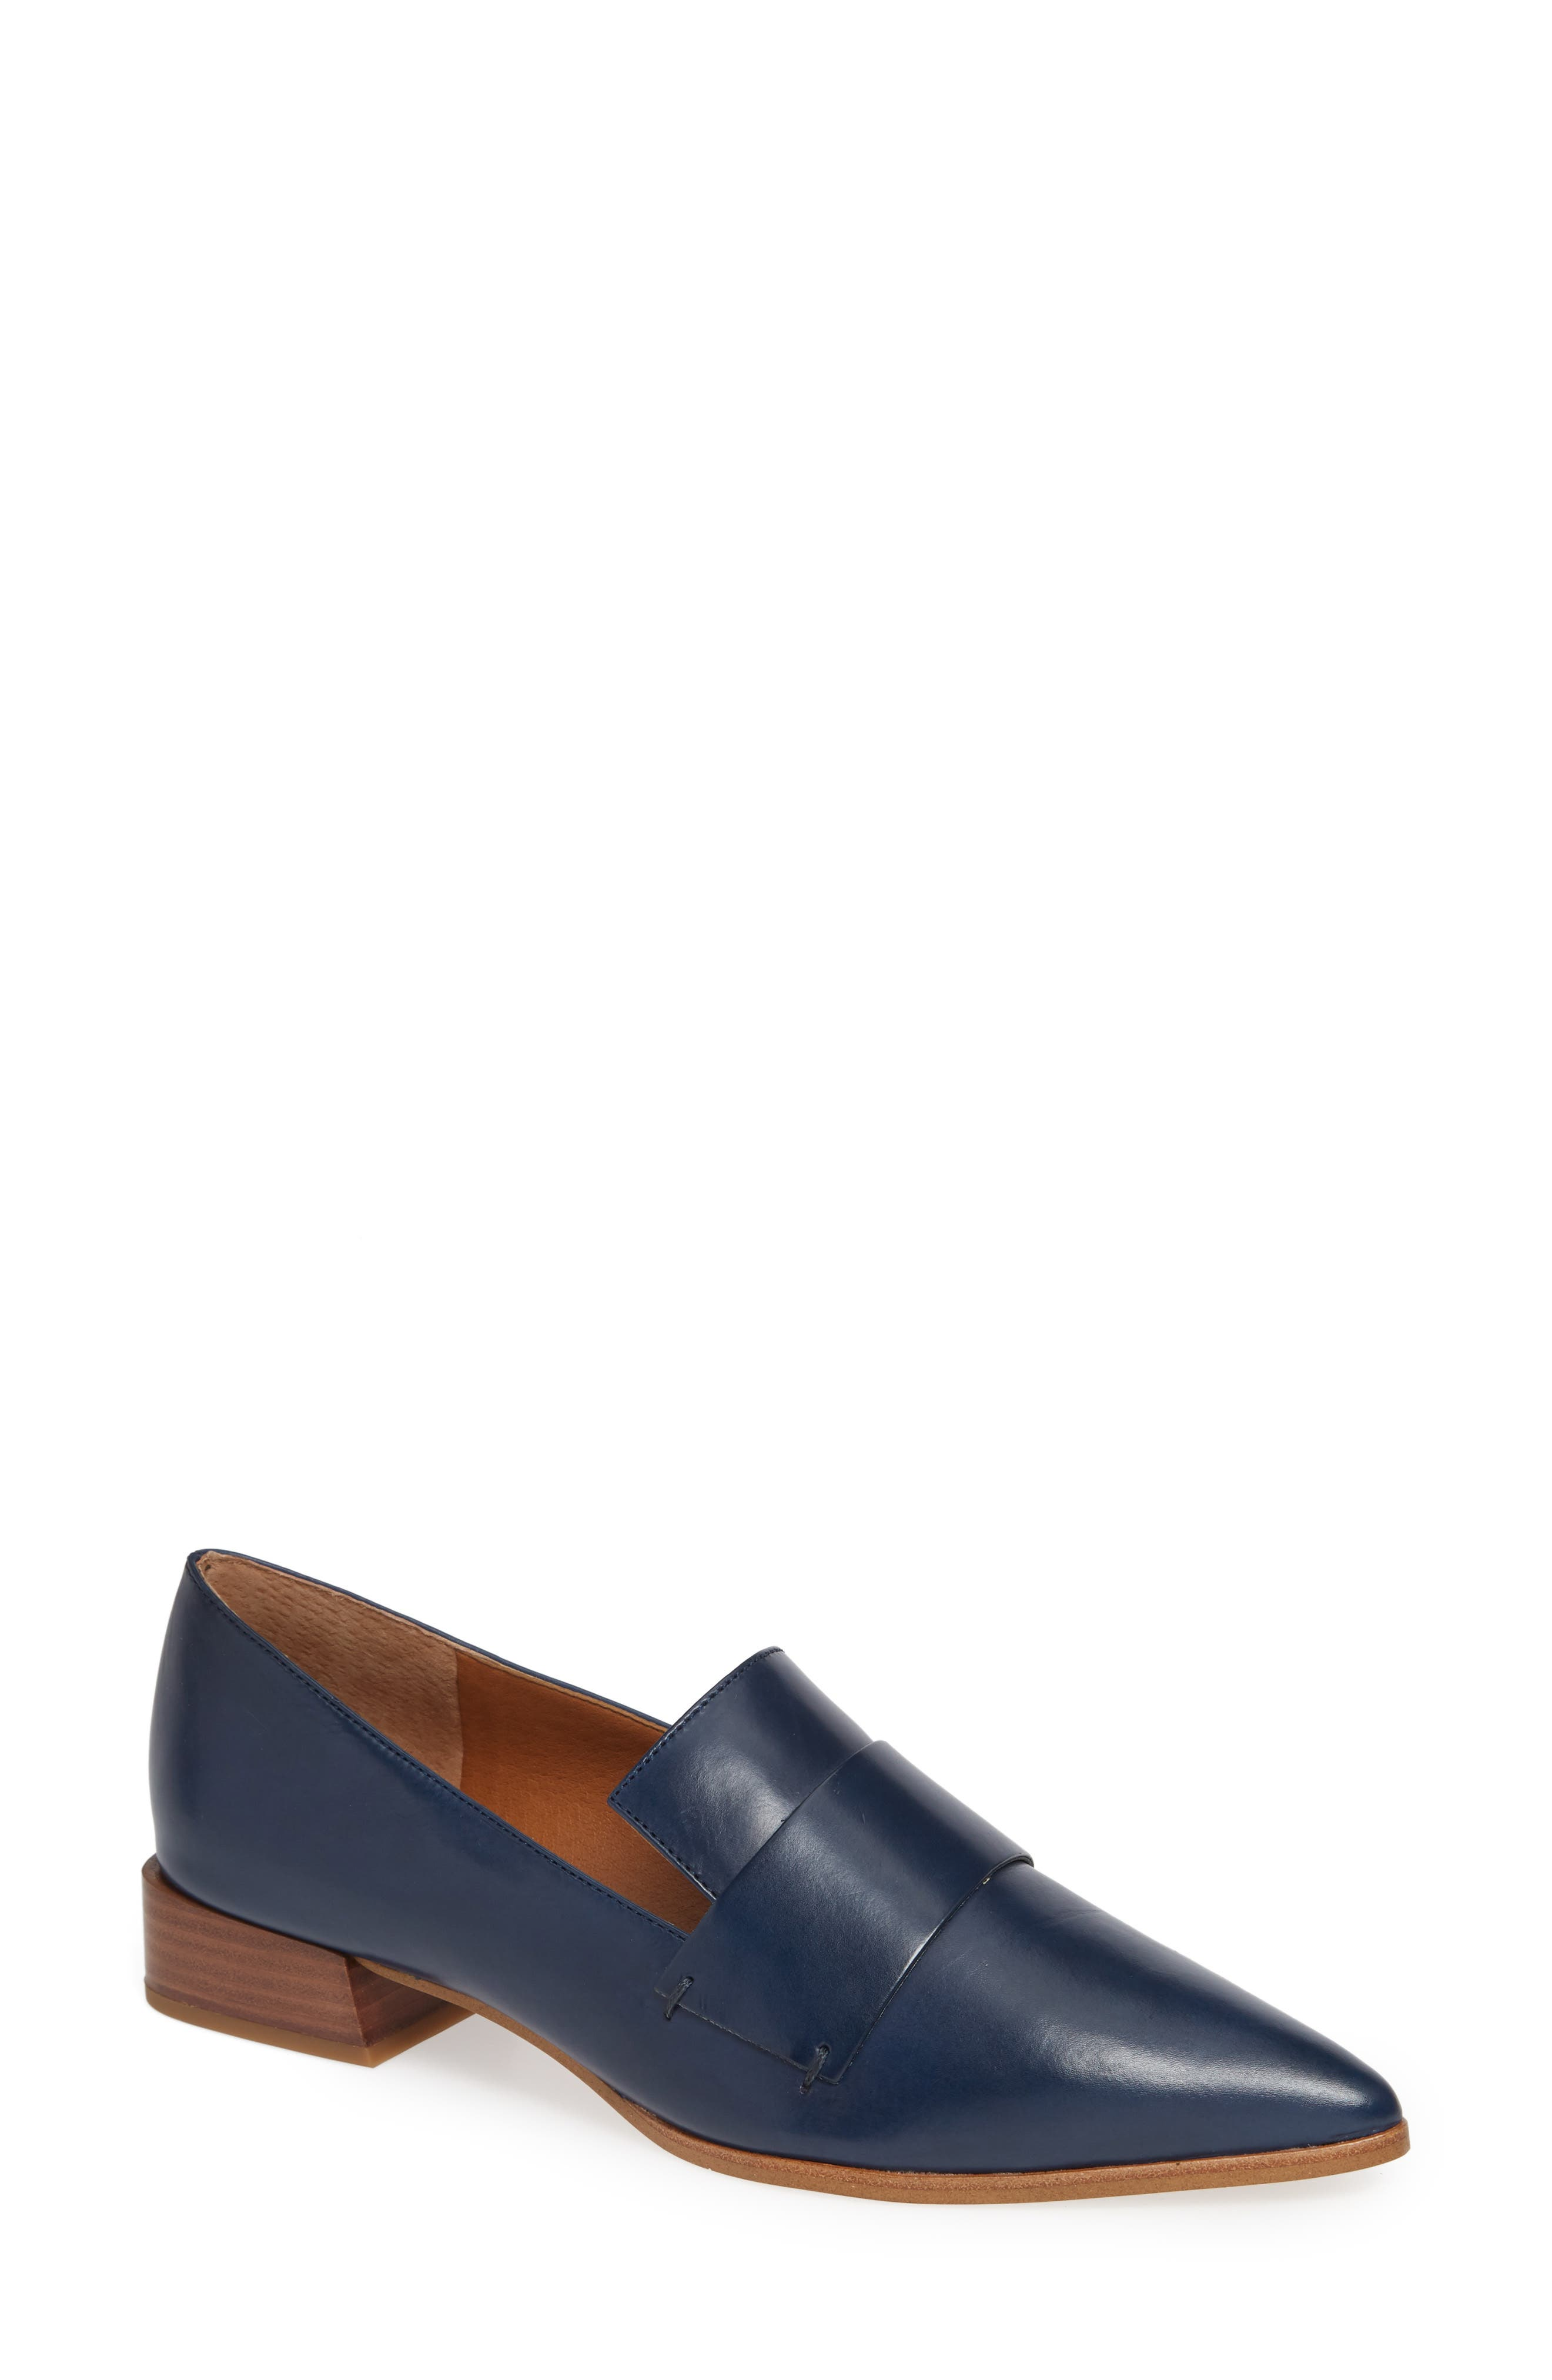 Nebby 2 Pointy Toe Loafer,                         Main,                         color, NAVY LEATHER